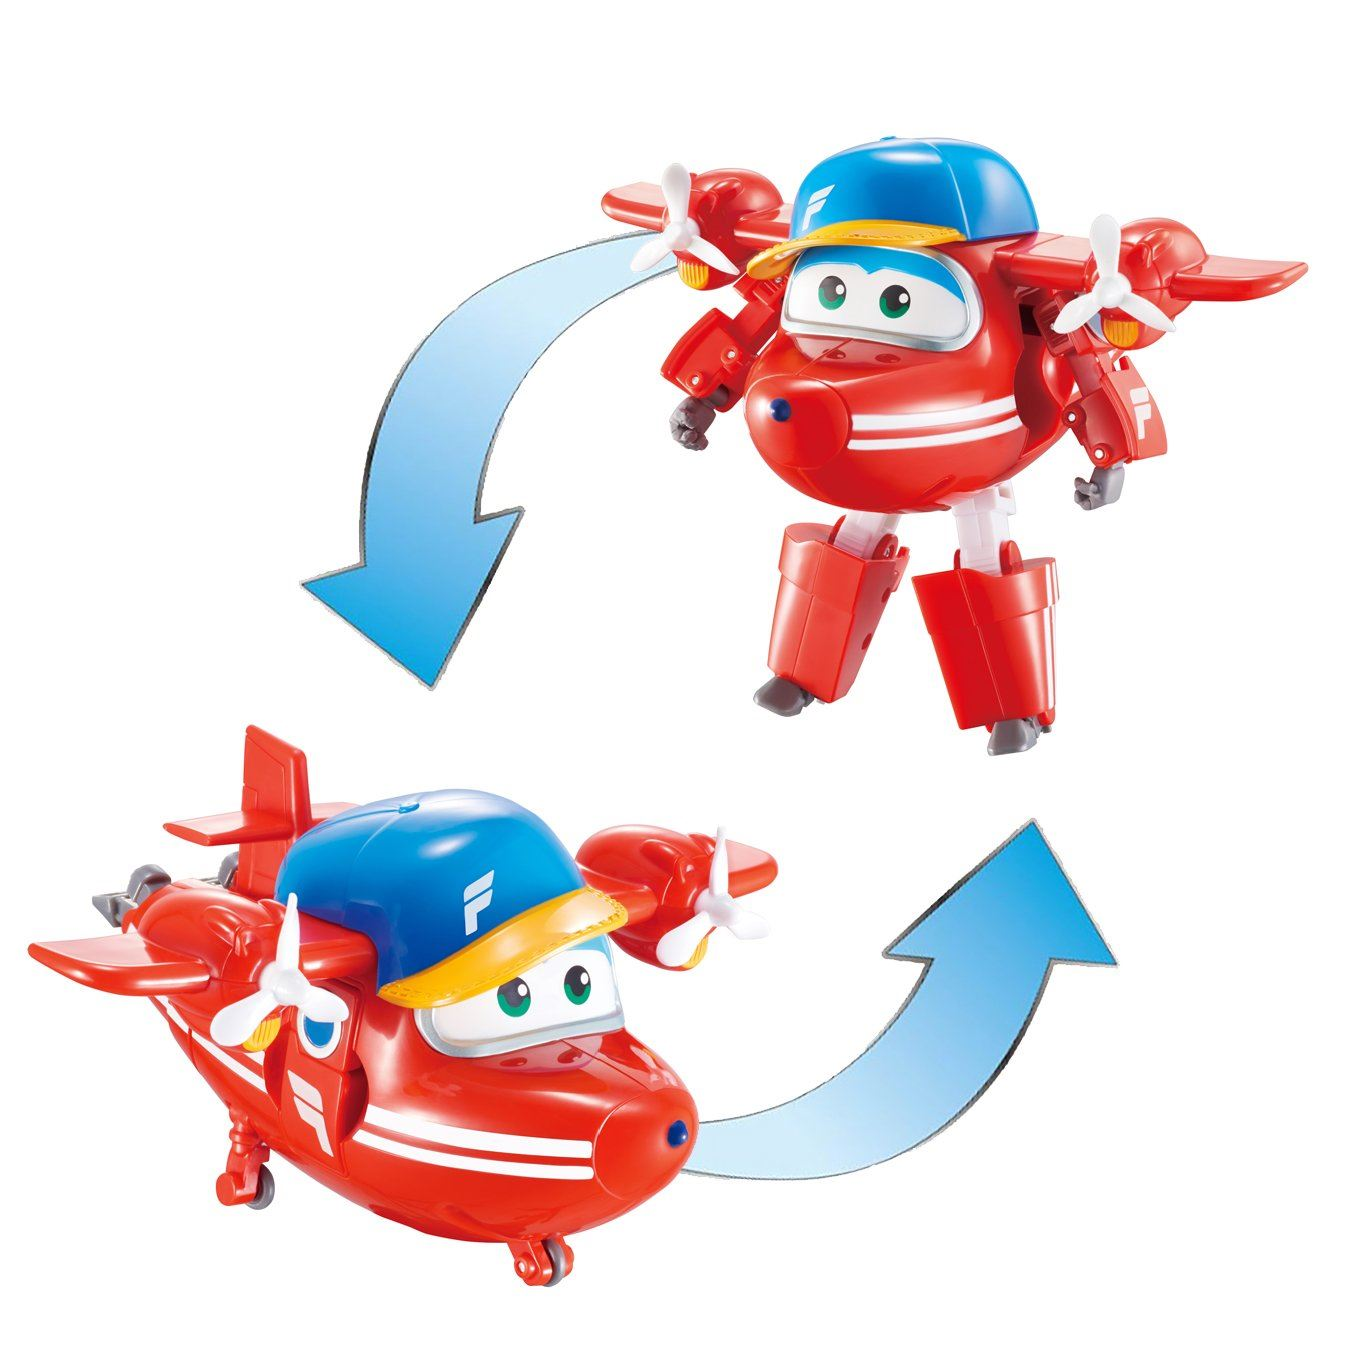 3 Super Wings Transforming Classic Jet Transform Plane To Bot Toy